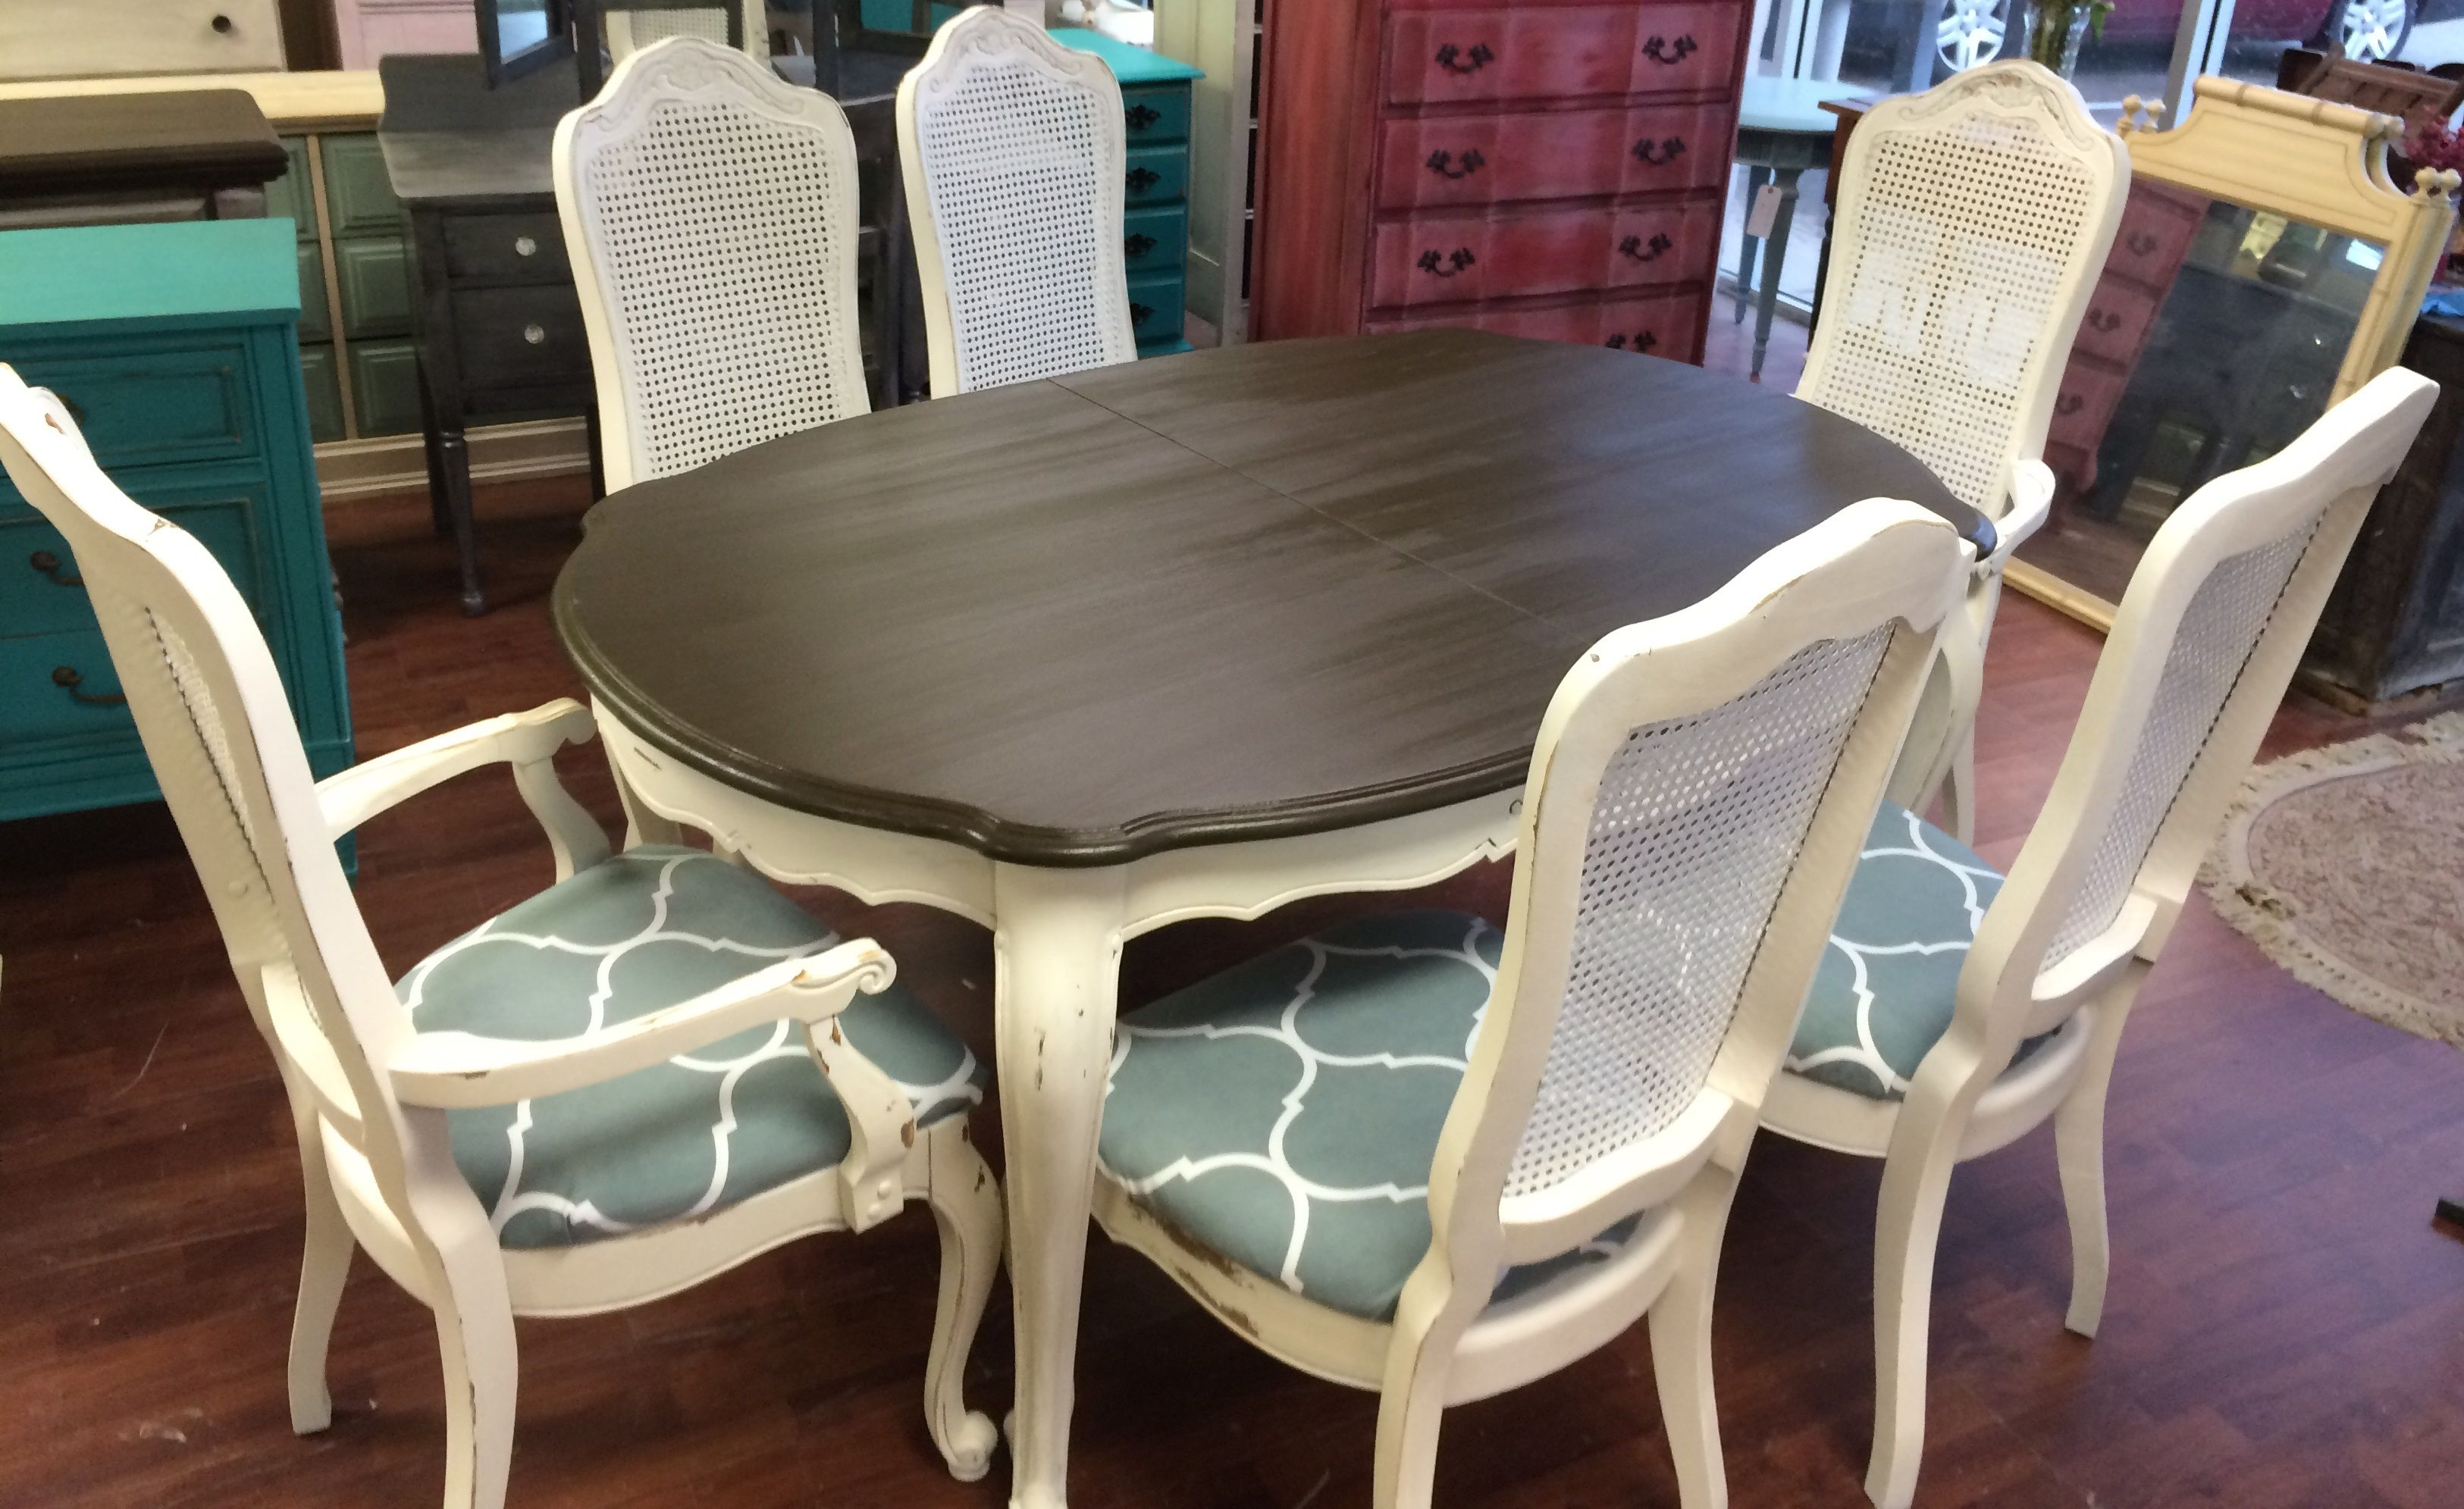 Here Is Another Super Cute French Dining Room Set It Has 2